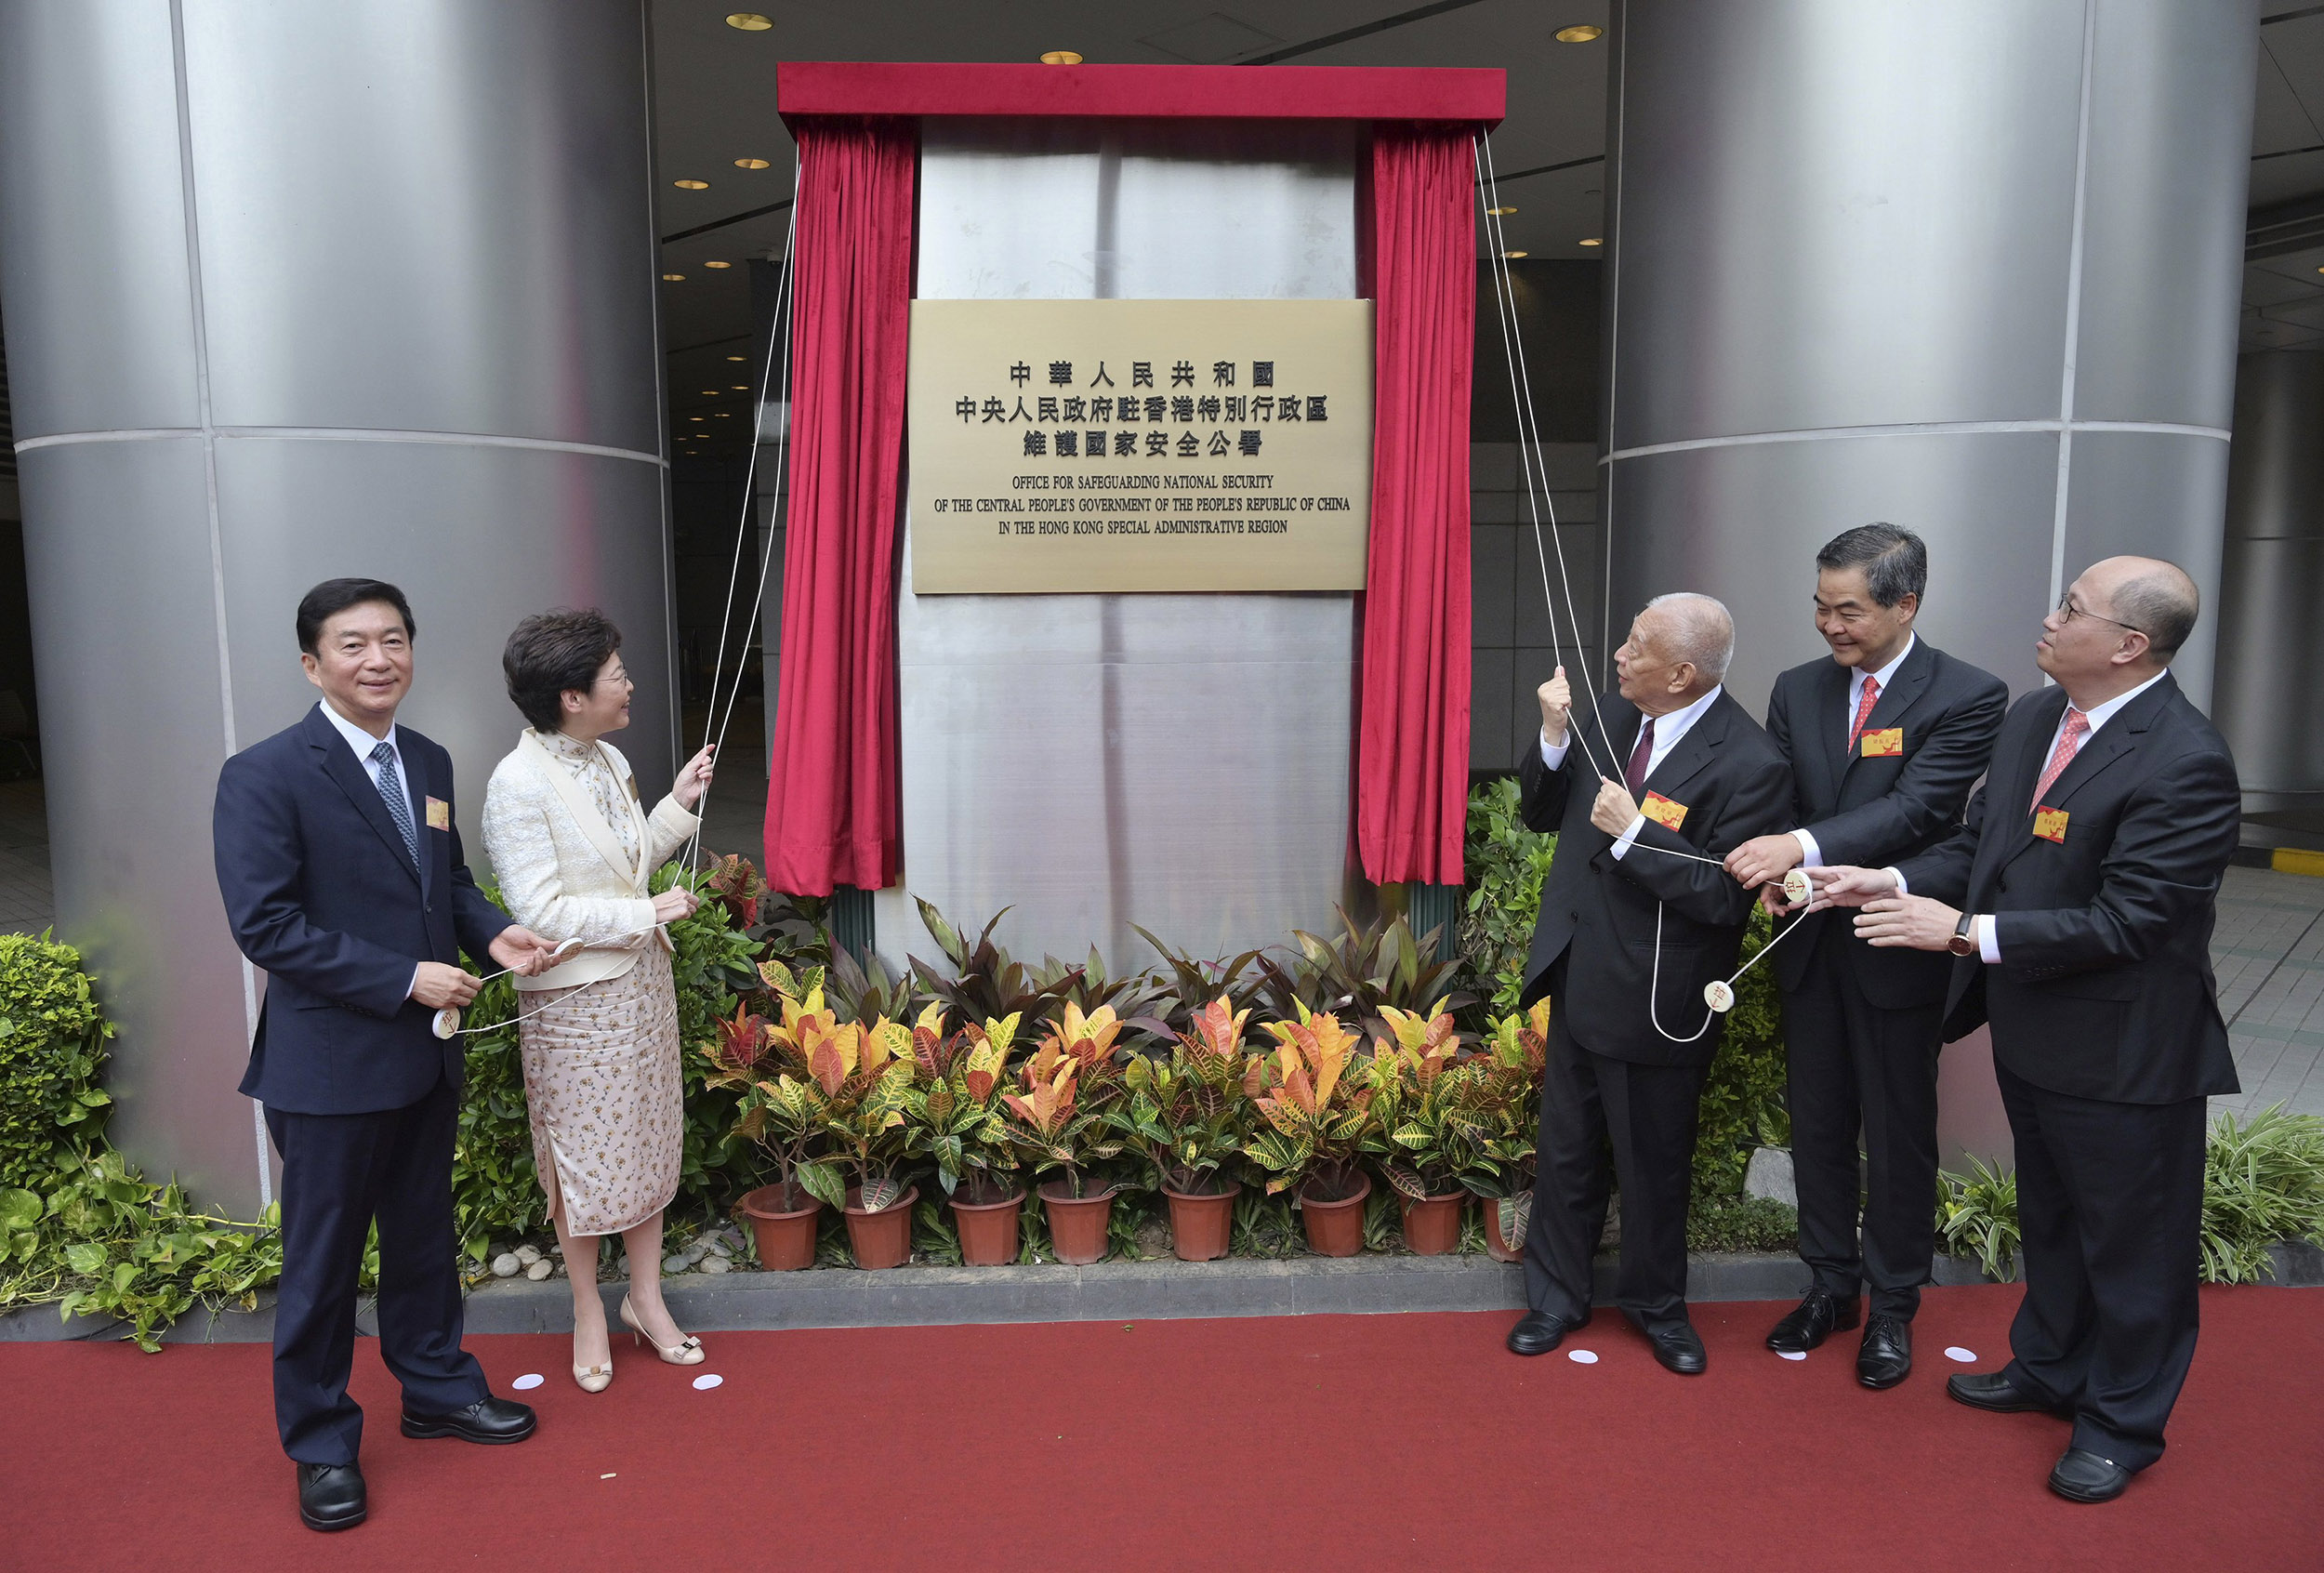 China opens national security office in Hong Kong in wake of new security law